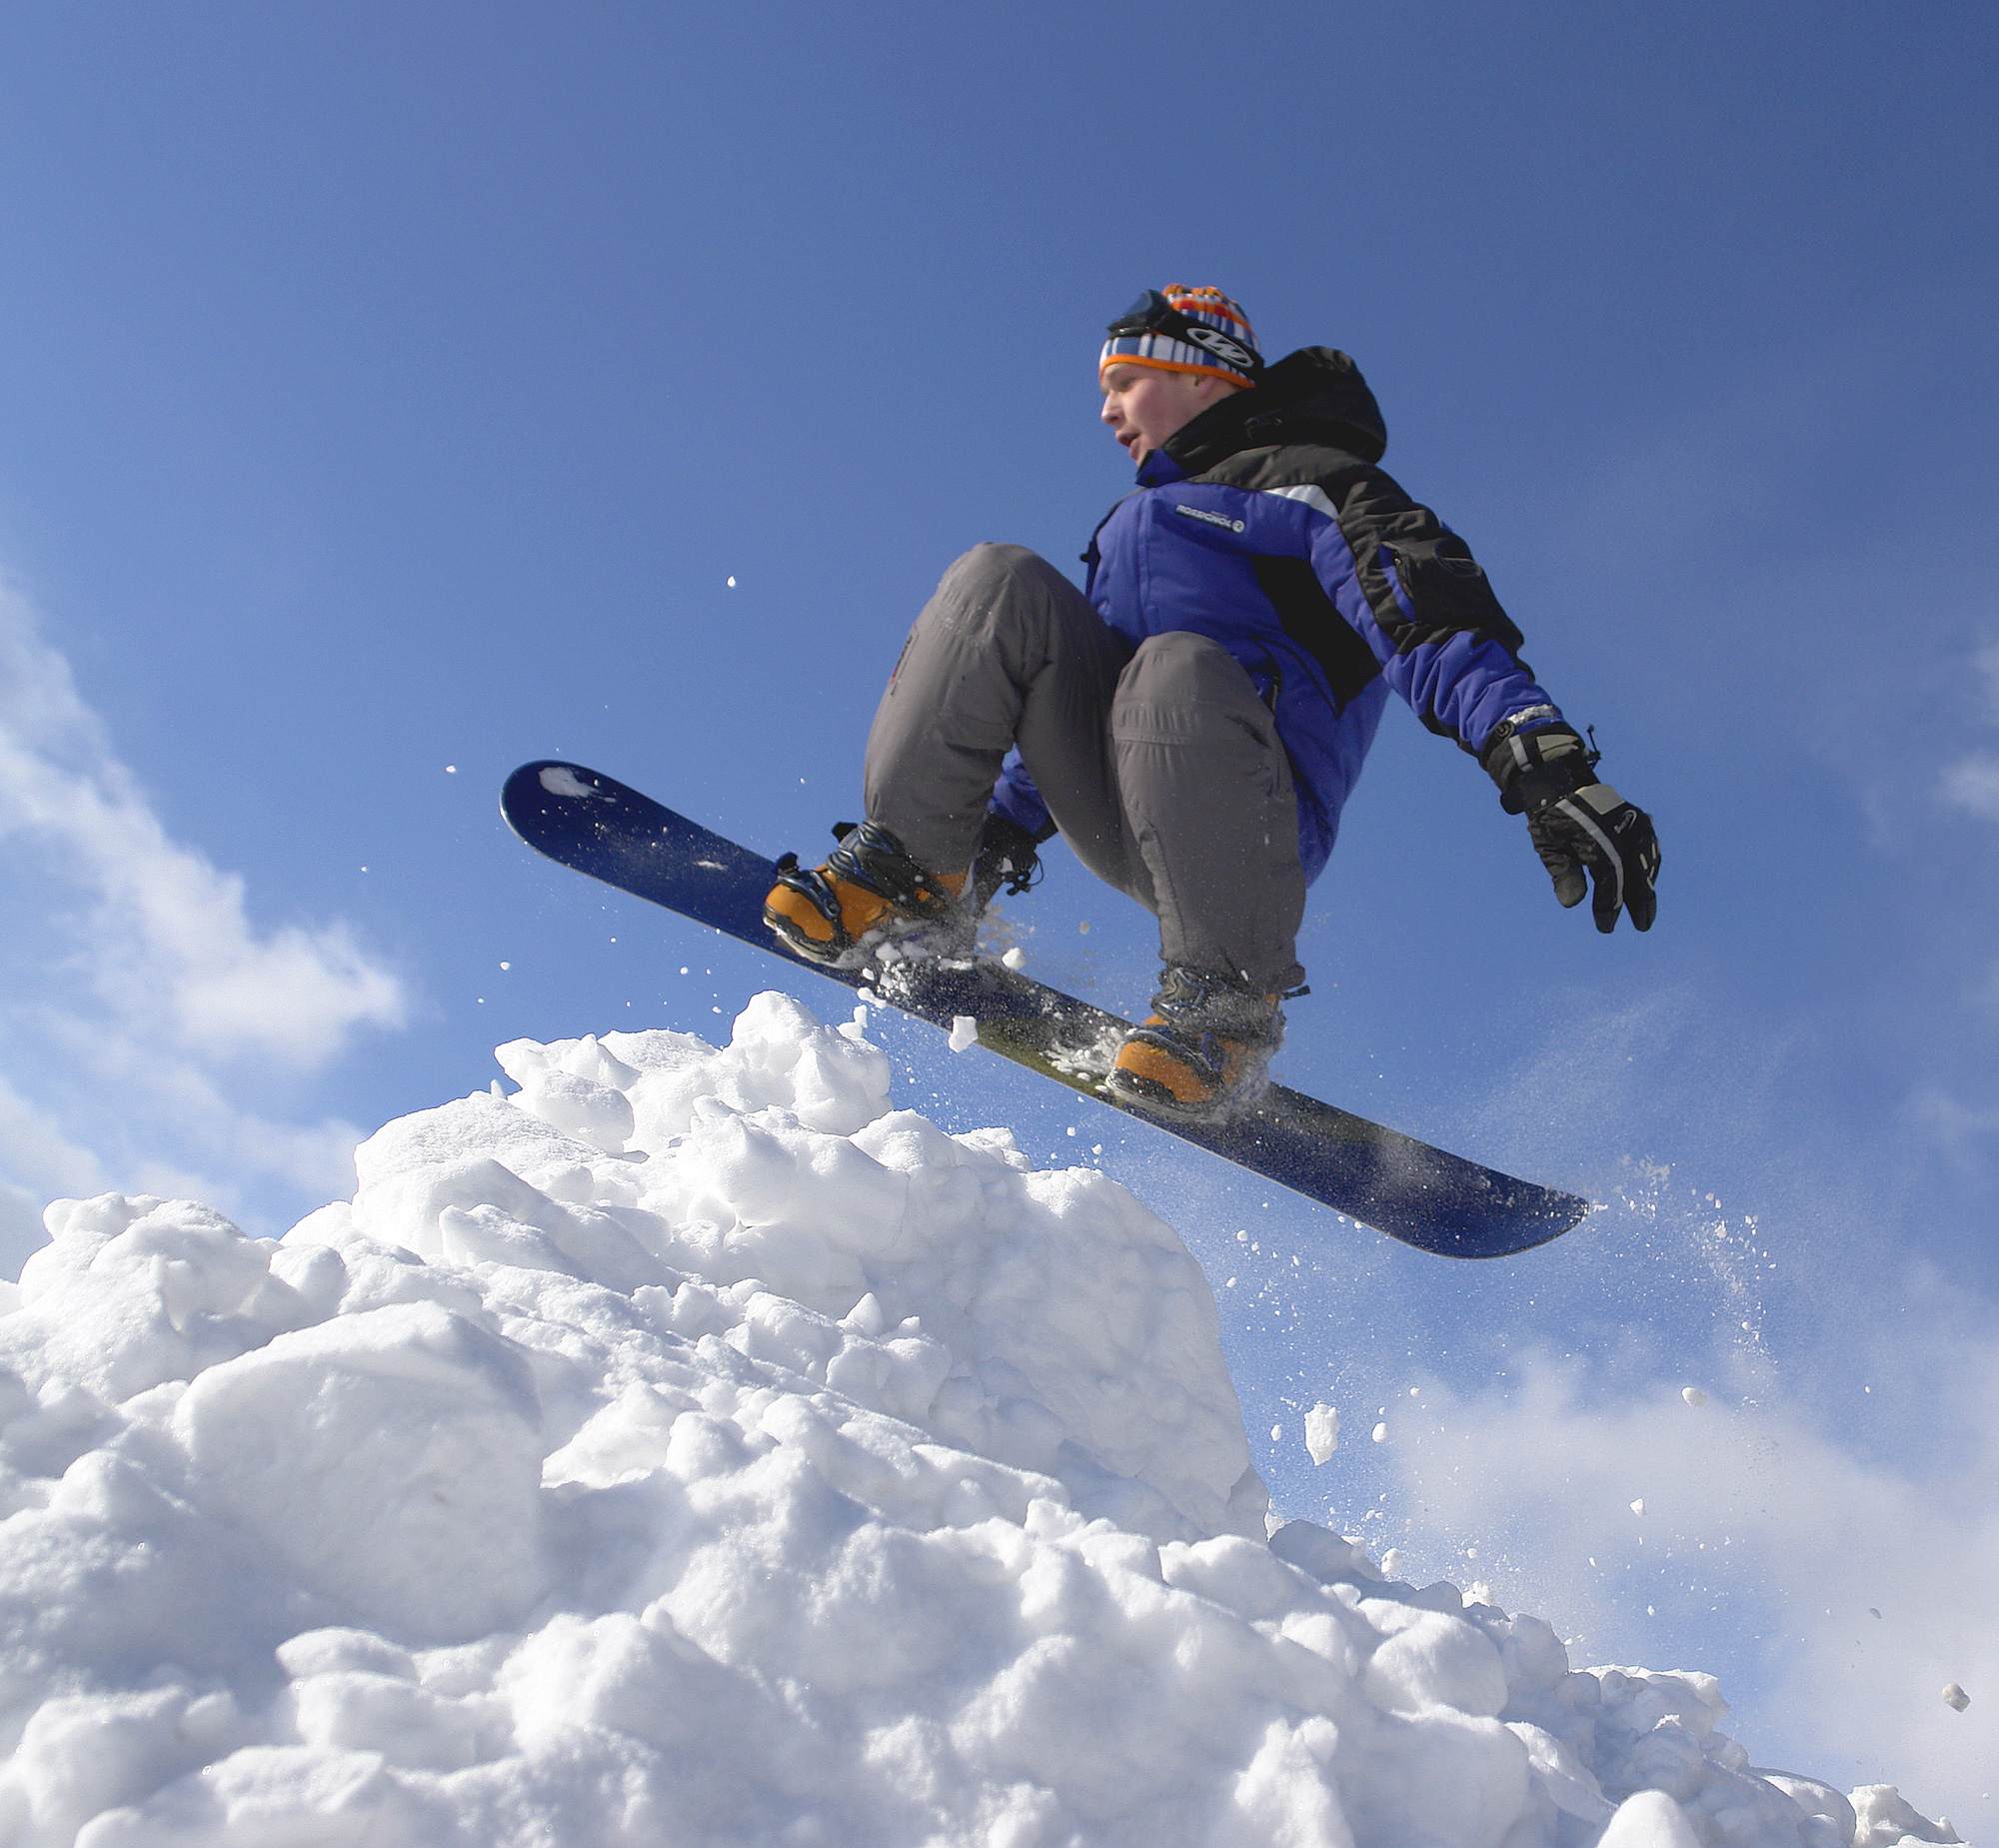 Snowboarding, Air, Bspo07, Extreme, Ice, HQ Photo